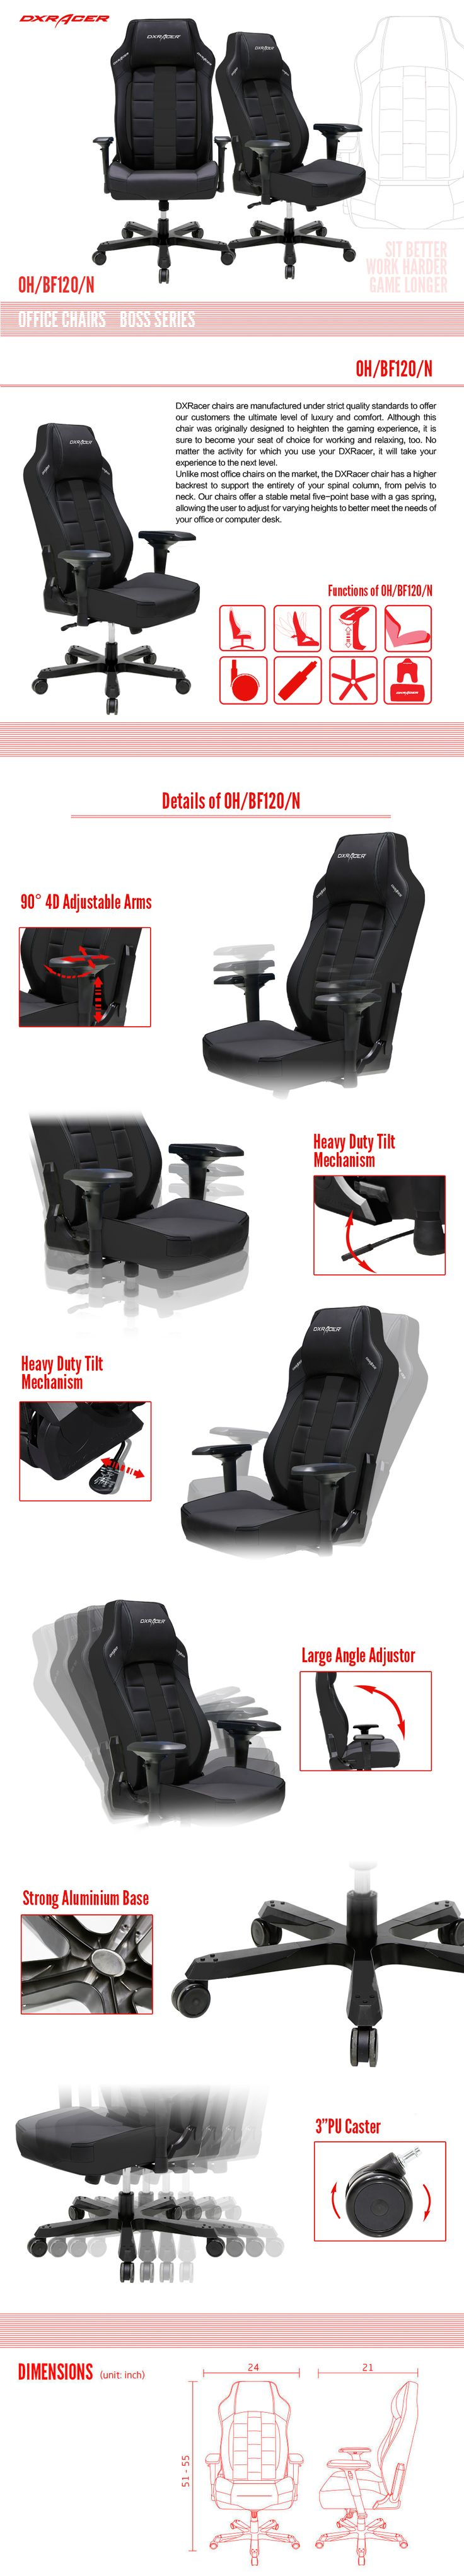 OH/BF120/N - Boss Series - Office Chairs  | DXRacer Official Website - Best Gaming Chair and Desk in the World